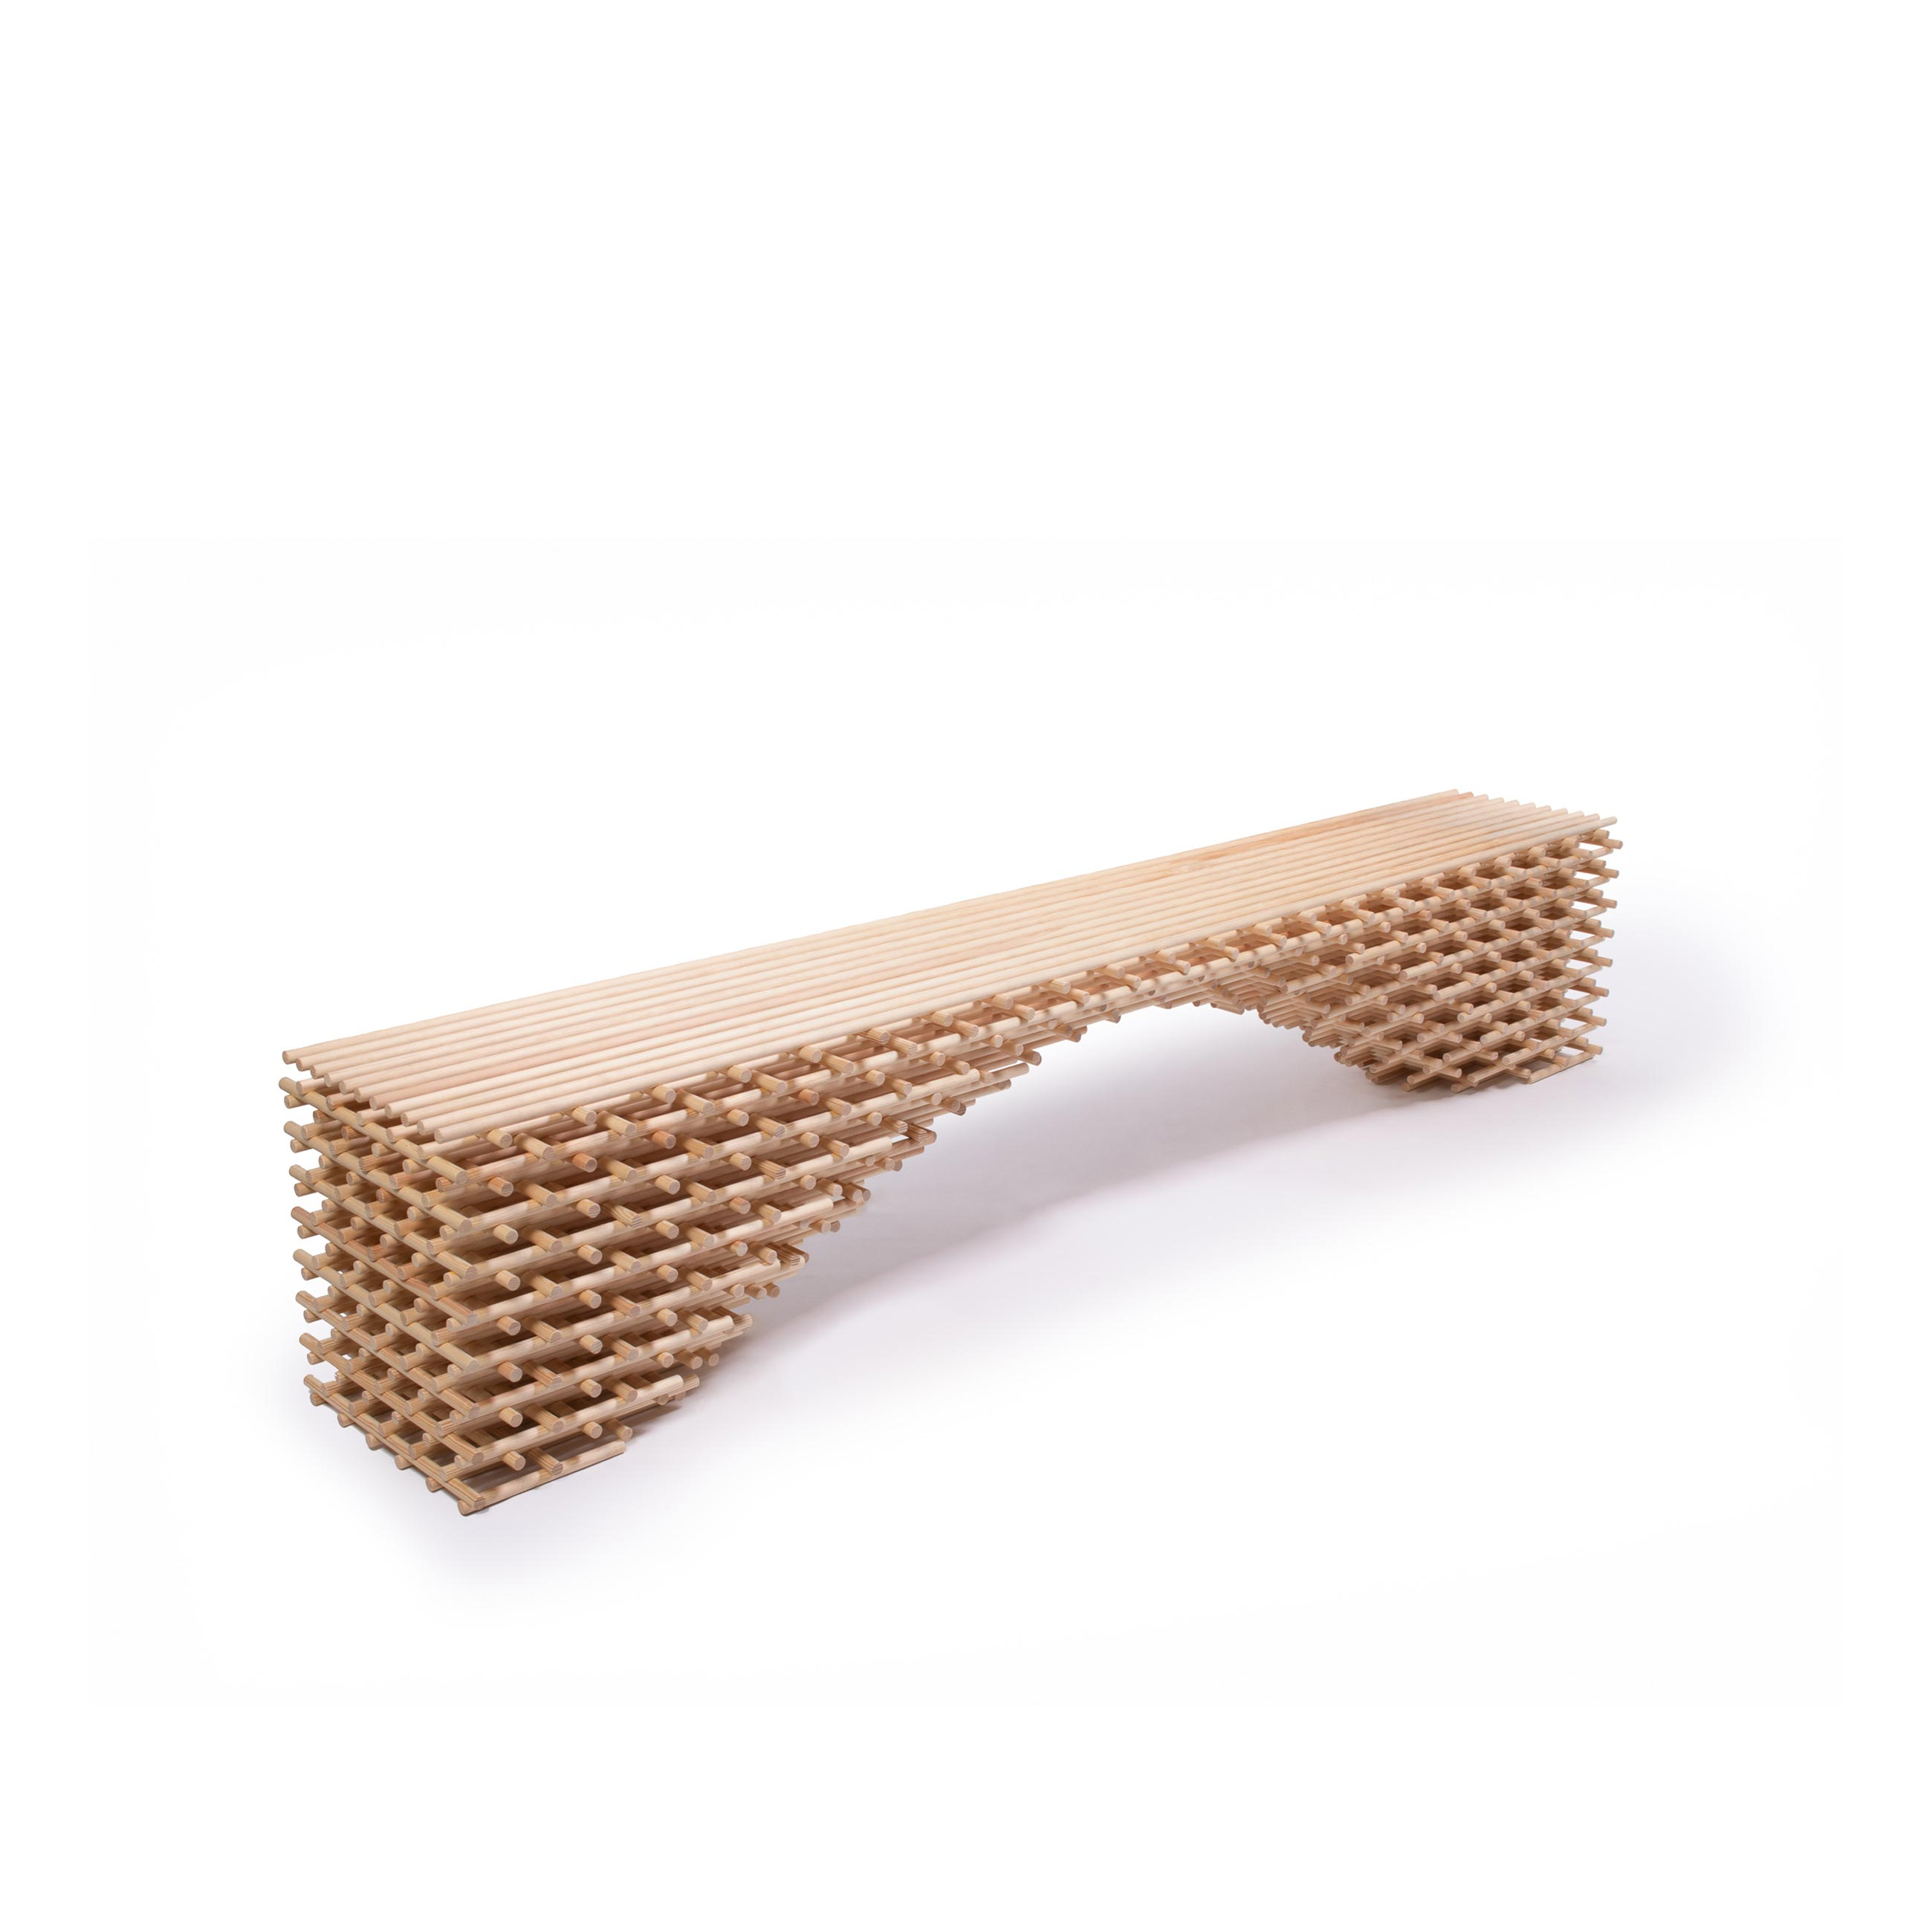 "Brodie Neill Latitude Bench - Longstanding champion of upcycling waste into new material streams, Brodie has reused 422 dowels to create a sculptural bench, ""Latitude"". Handcrafted in Brodie's East London studio, ""Latitude"" uses a lattice-like technique reminiscent of traditional Japanese bamboo constructions where linear elements are bound together to create seemingly simple scaffolding-like structures. 